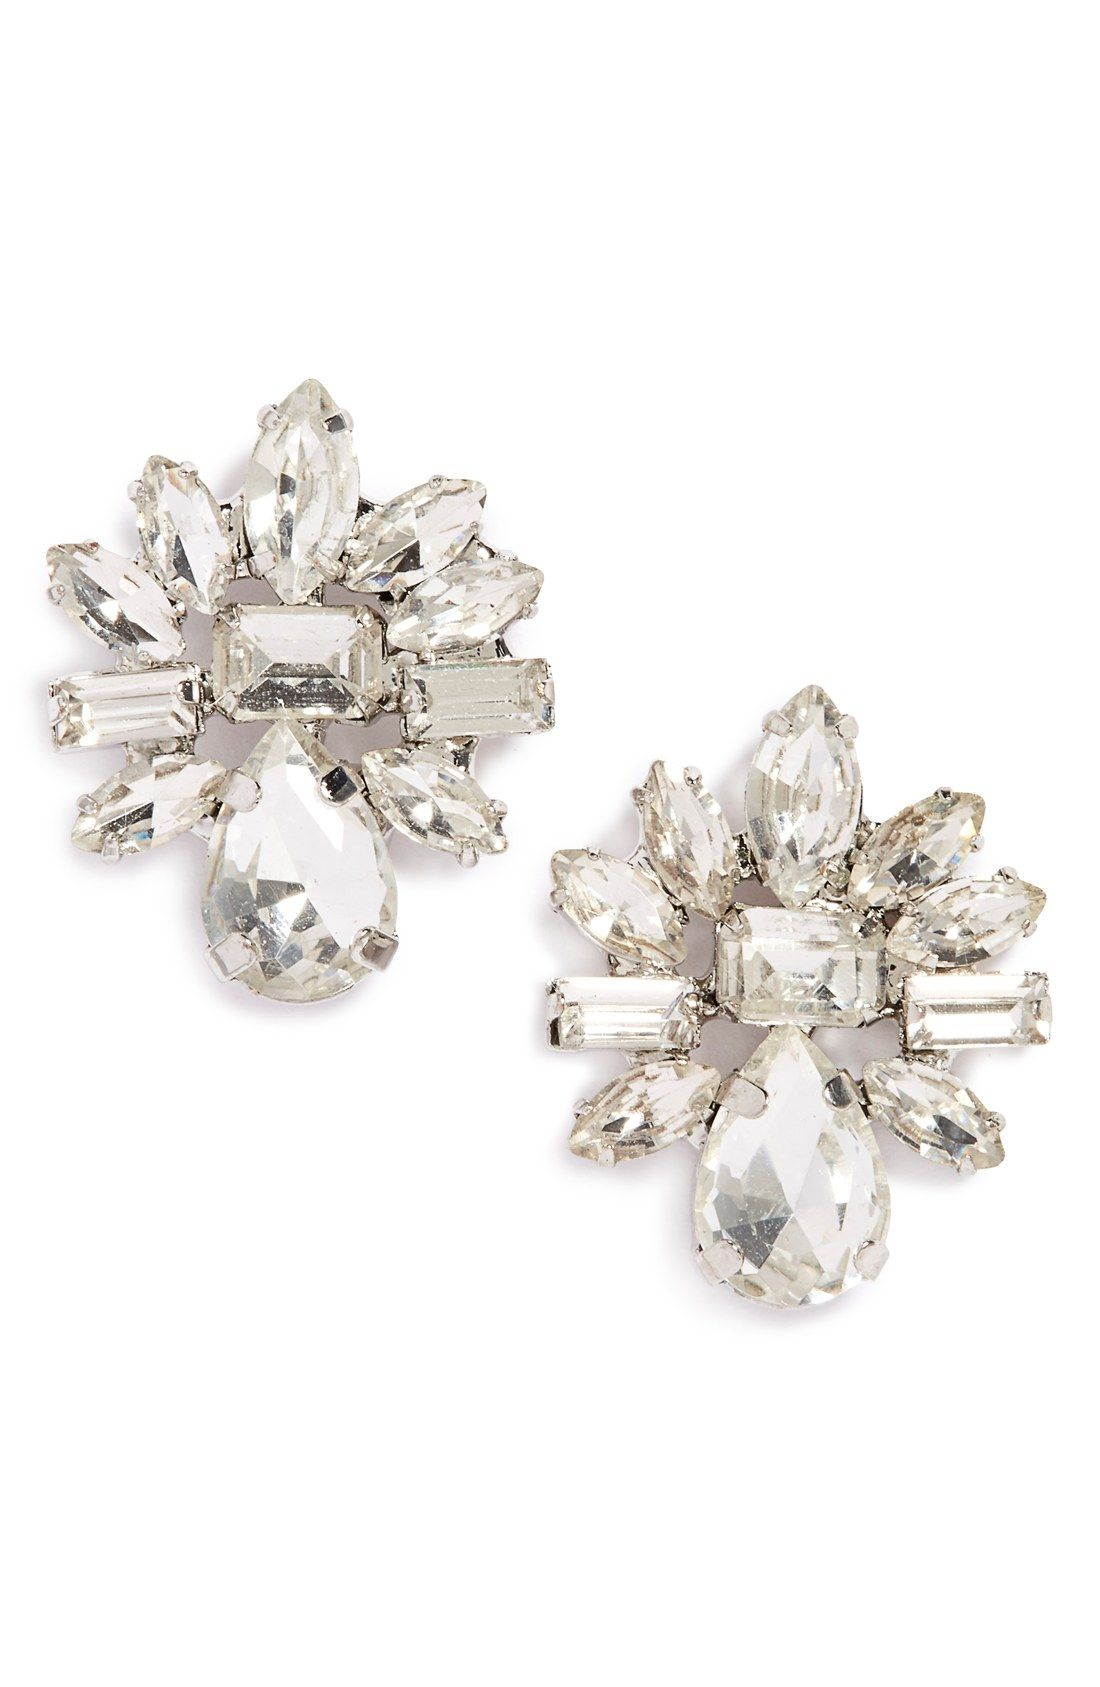 These Sparkly Rhinestone Earrings Make An Elegant Statement